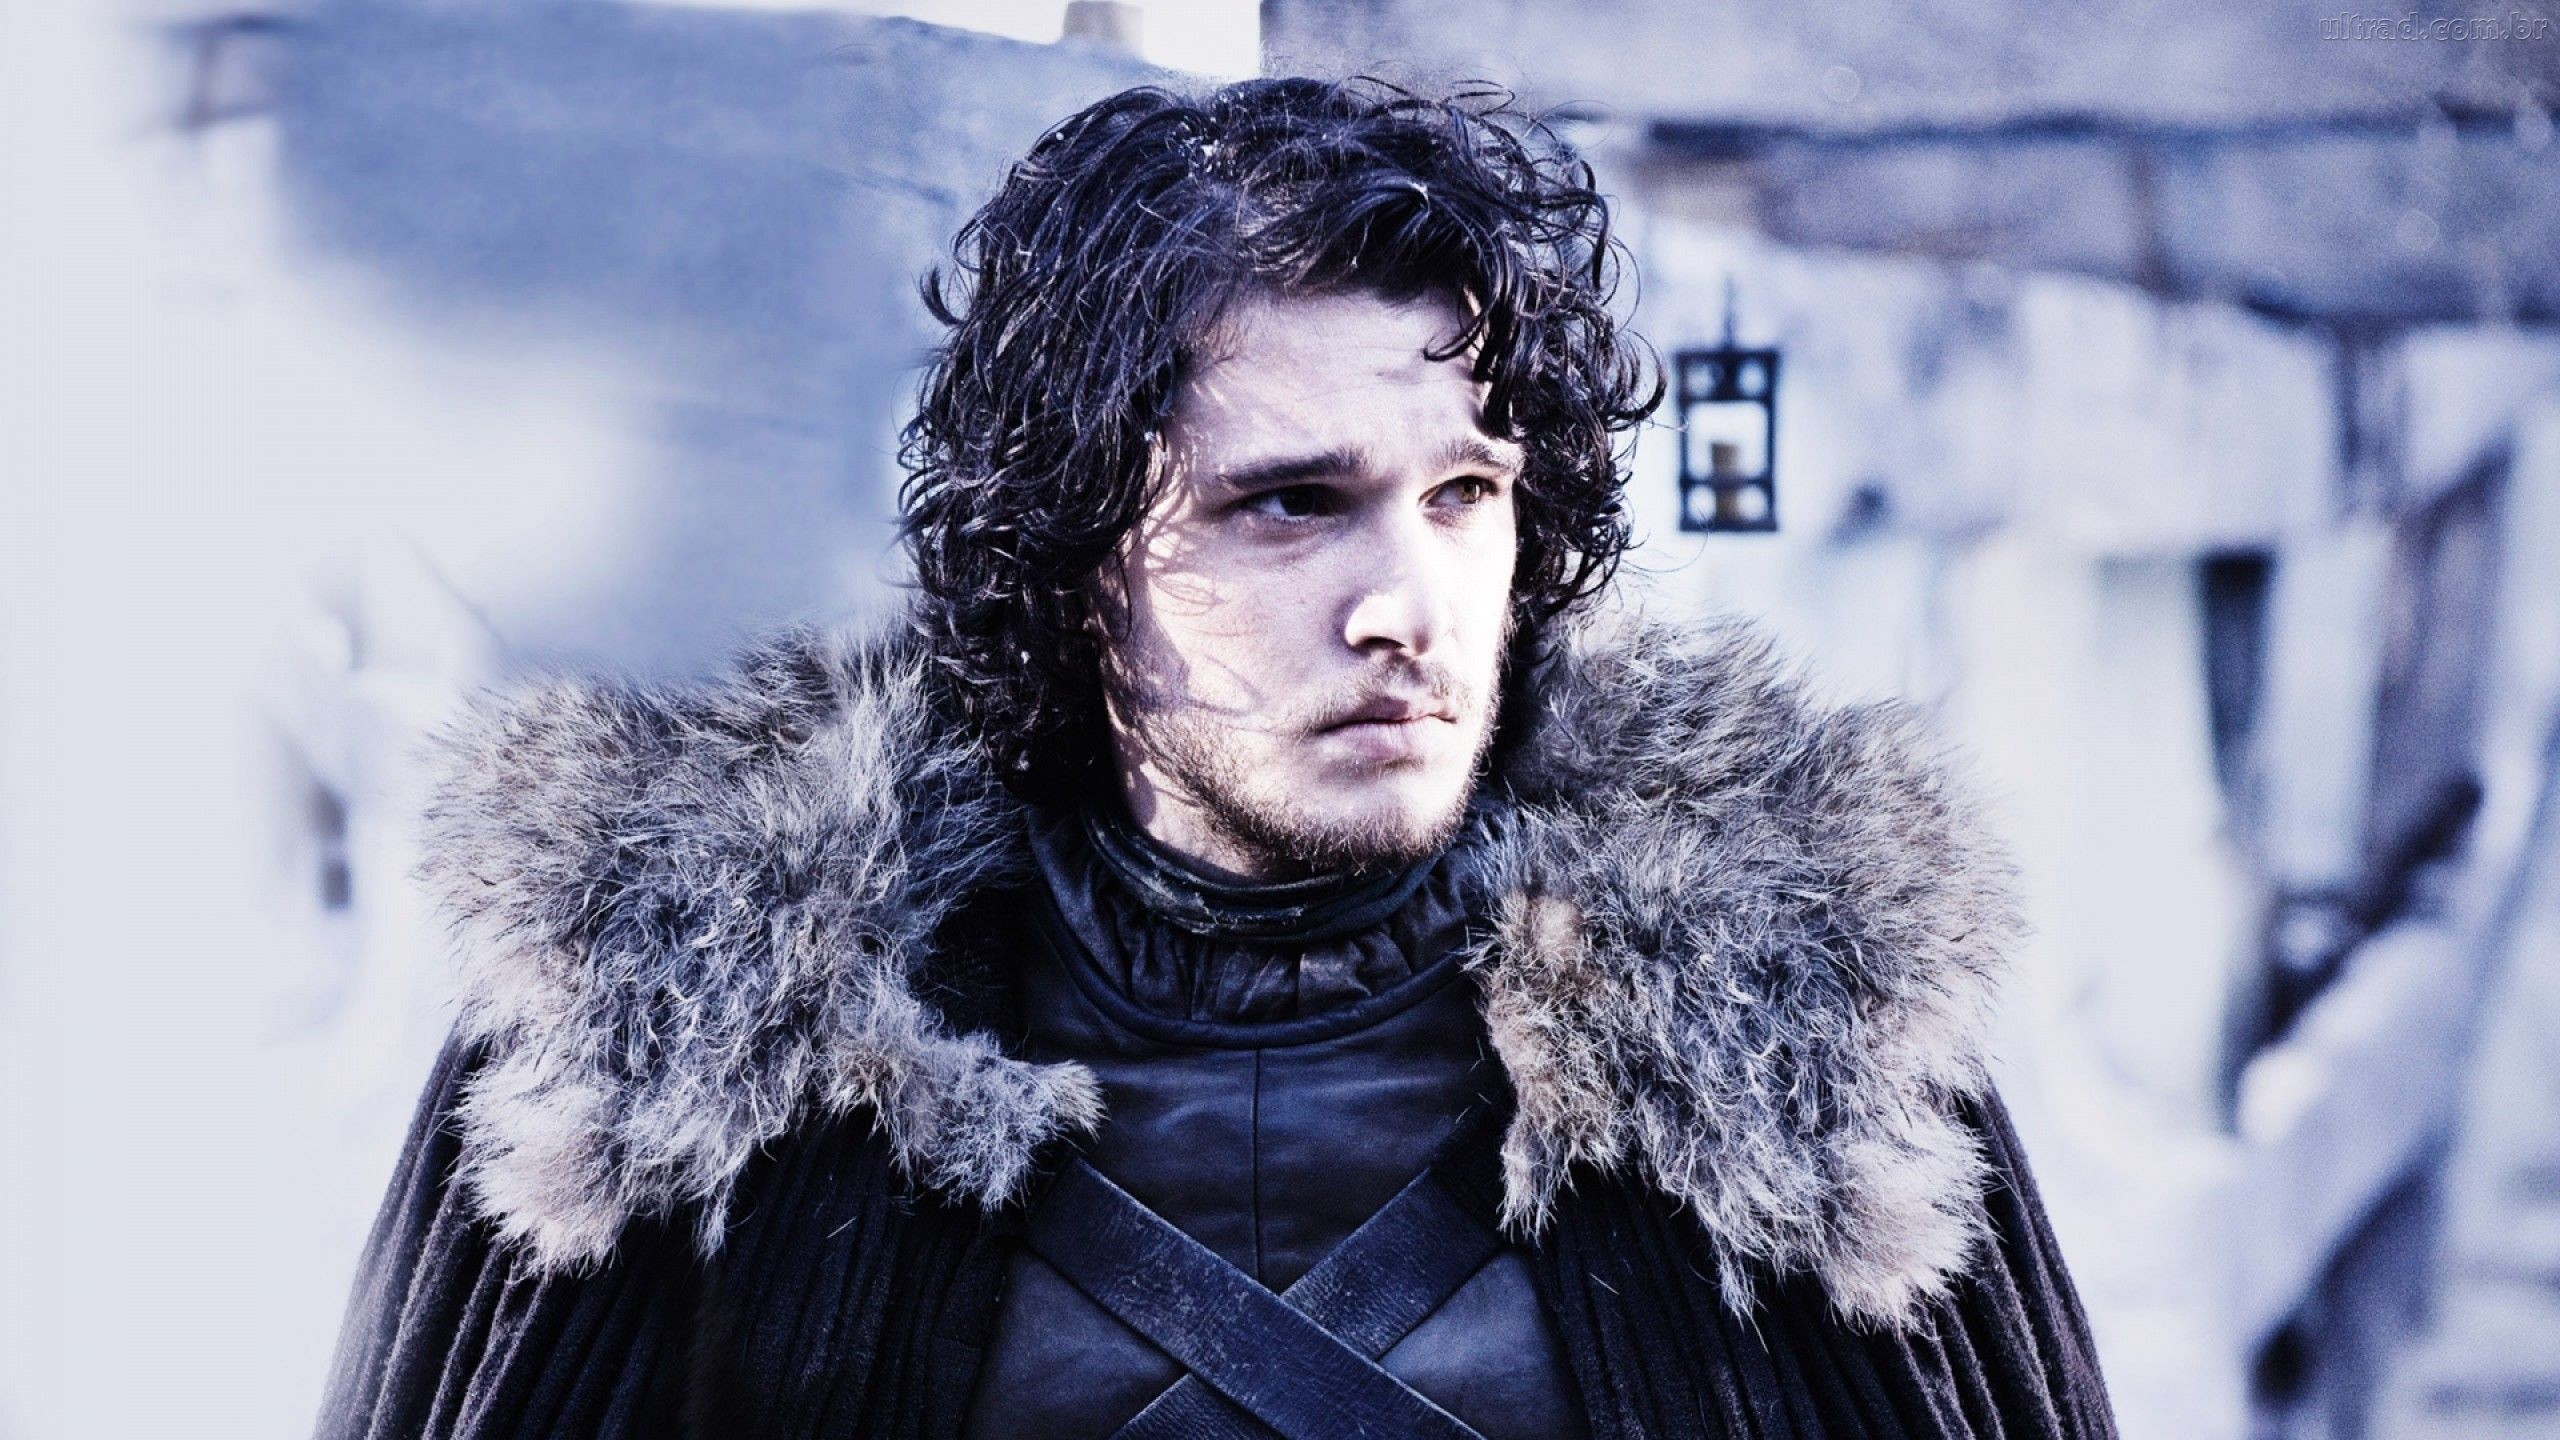 This Fan Trailer Charting Jon Snow's Journey Is Absolutely Epic – Sick  Chirpse